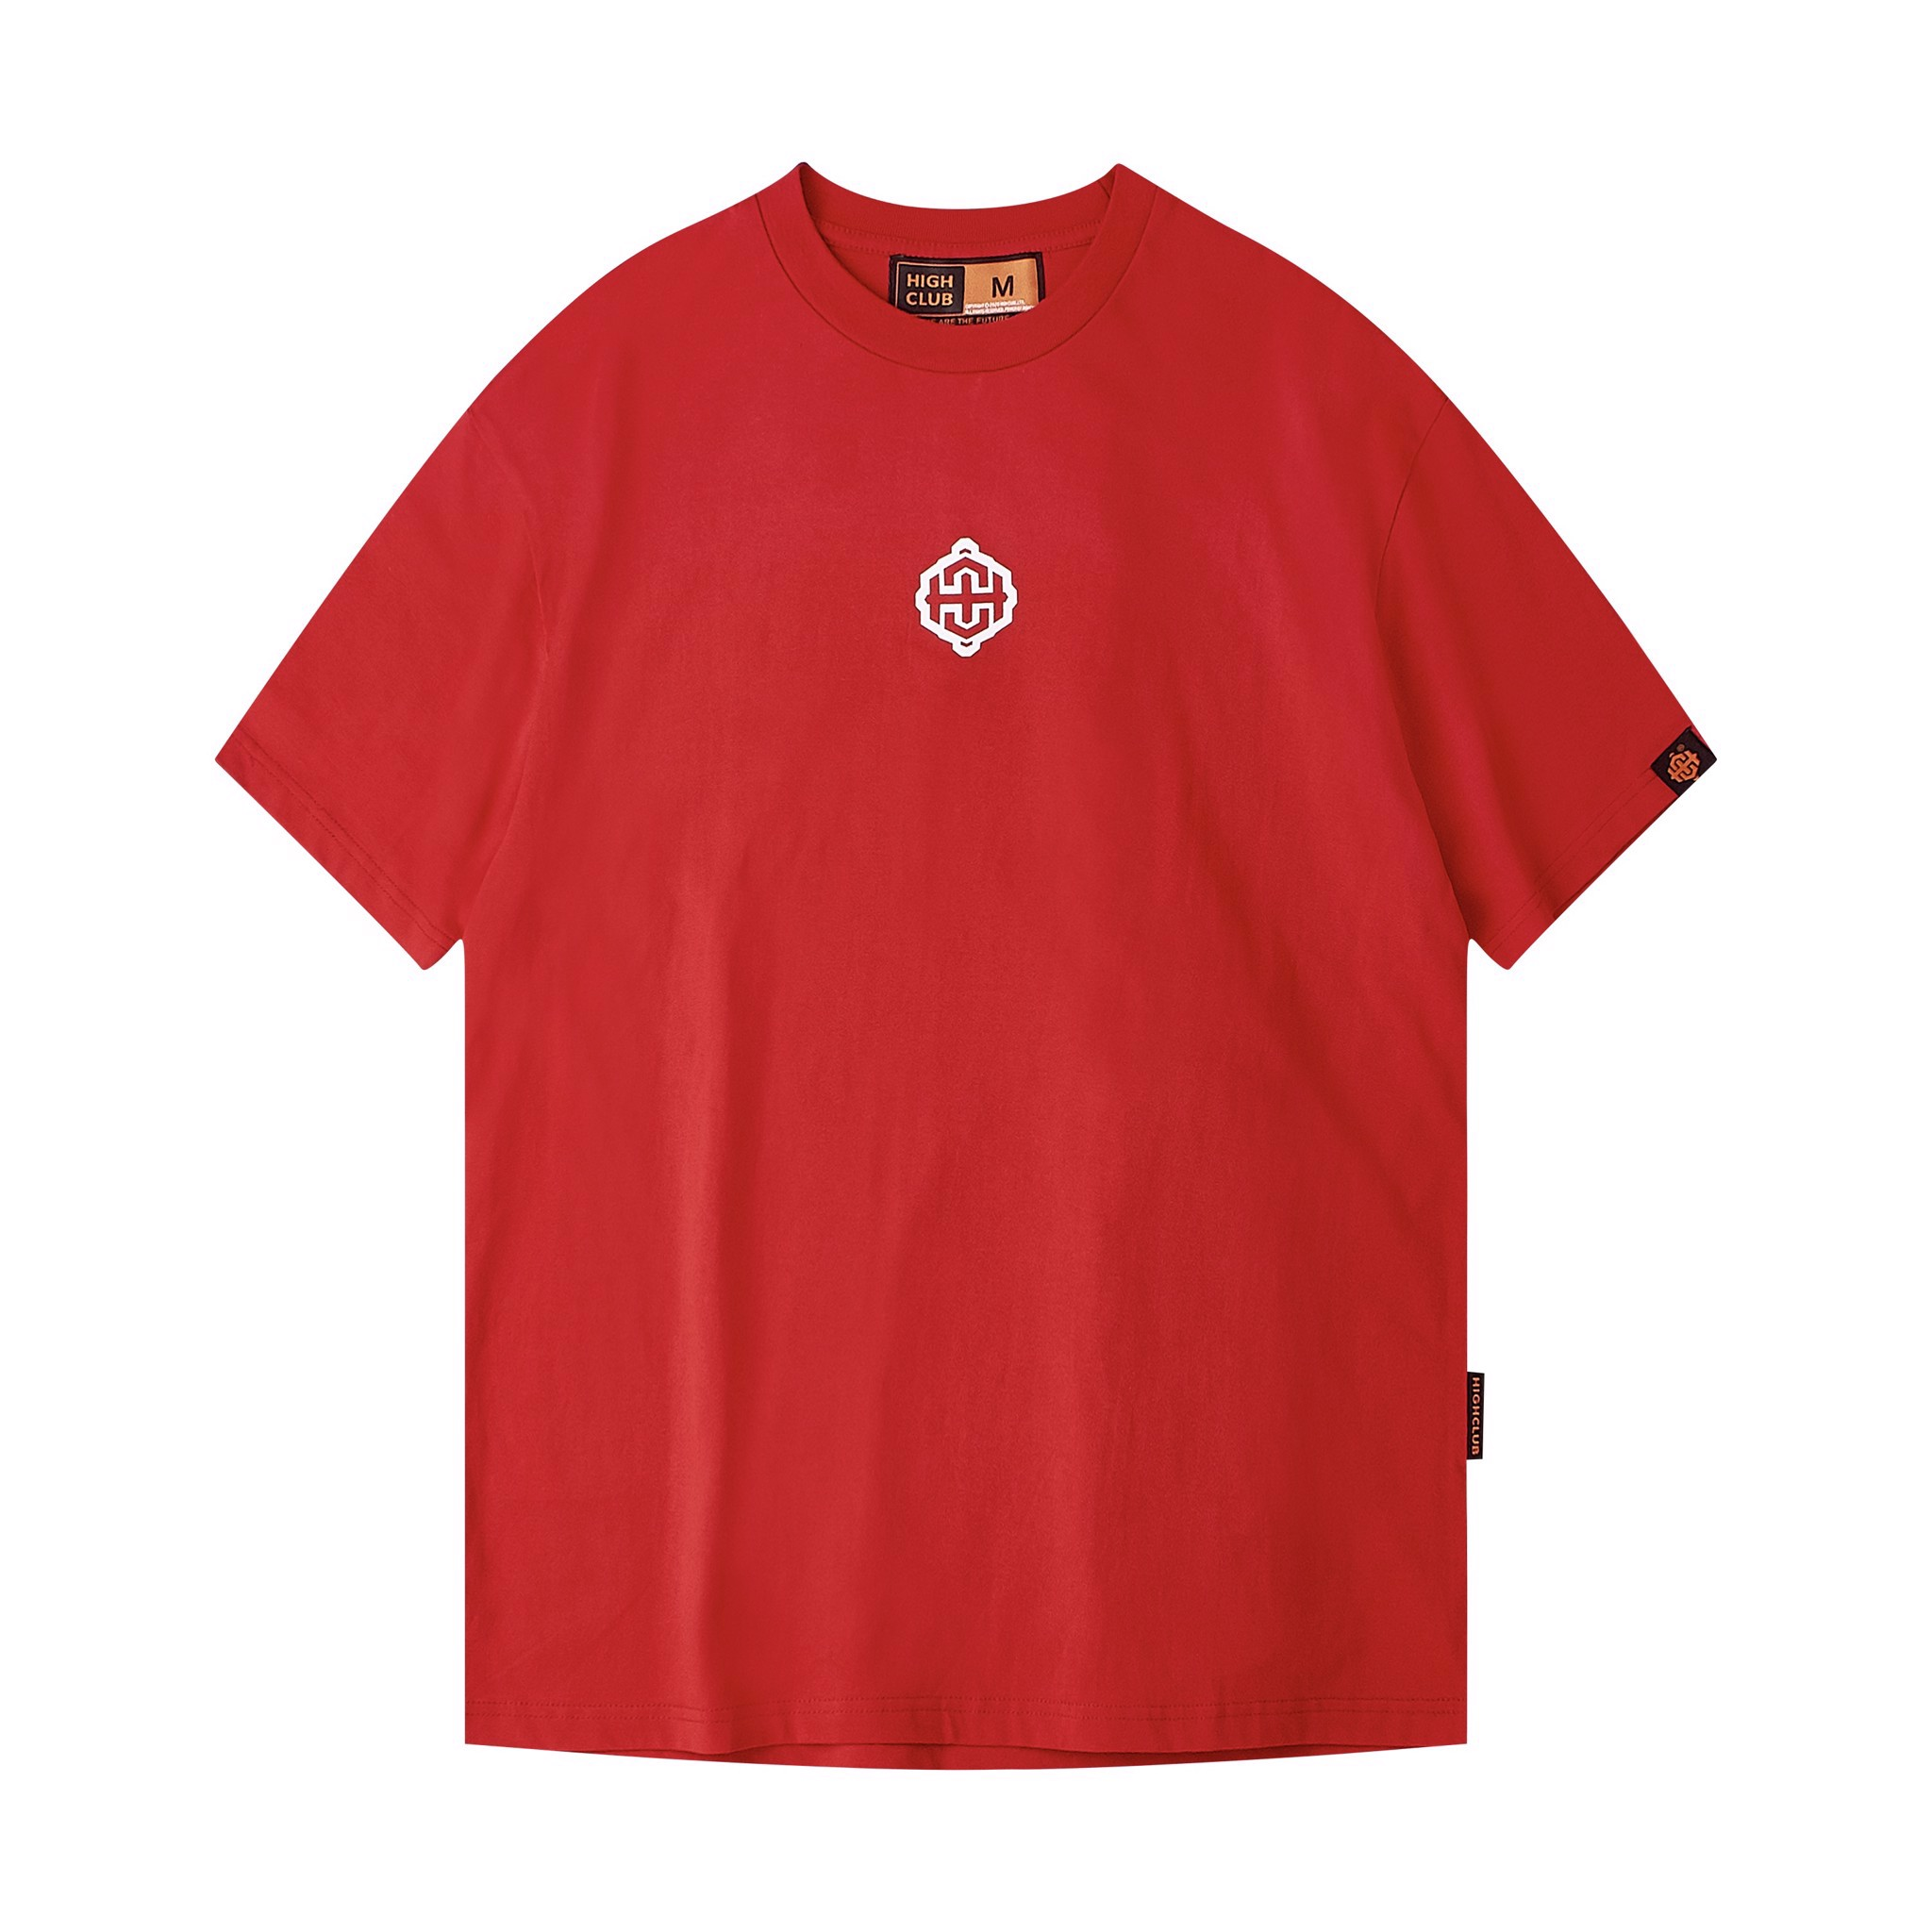 Overflow Tee - Red/White